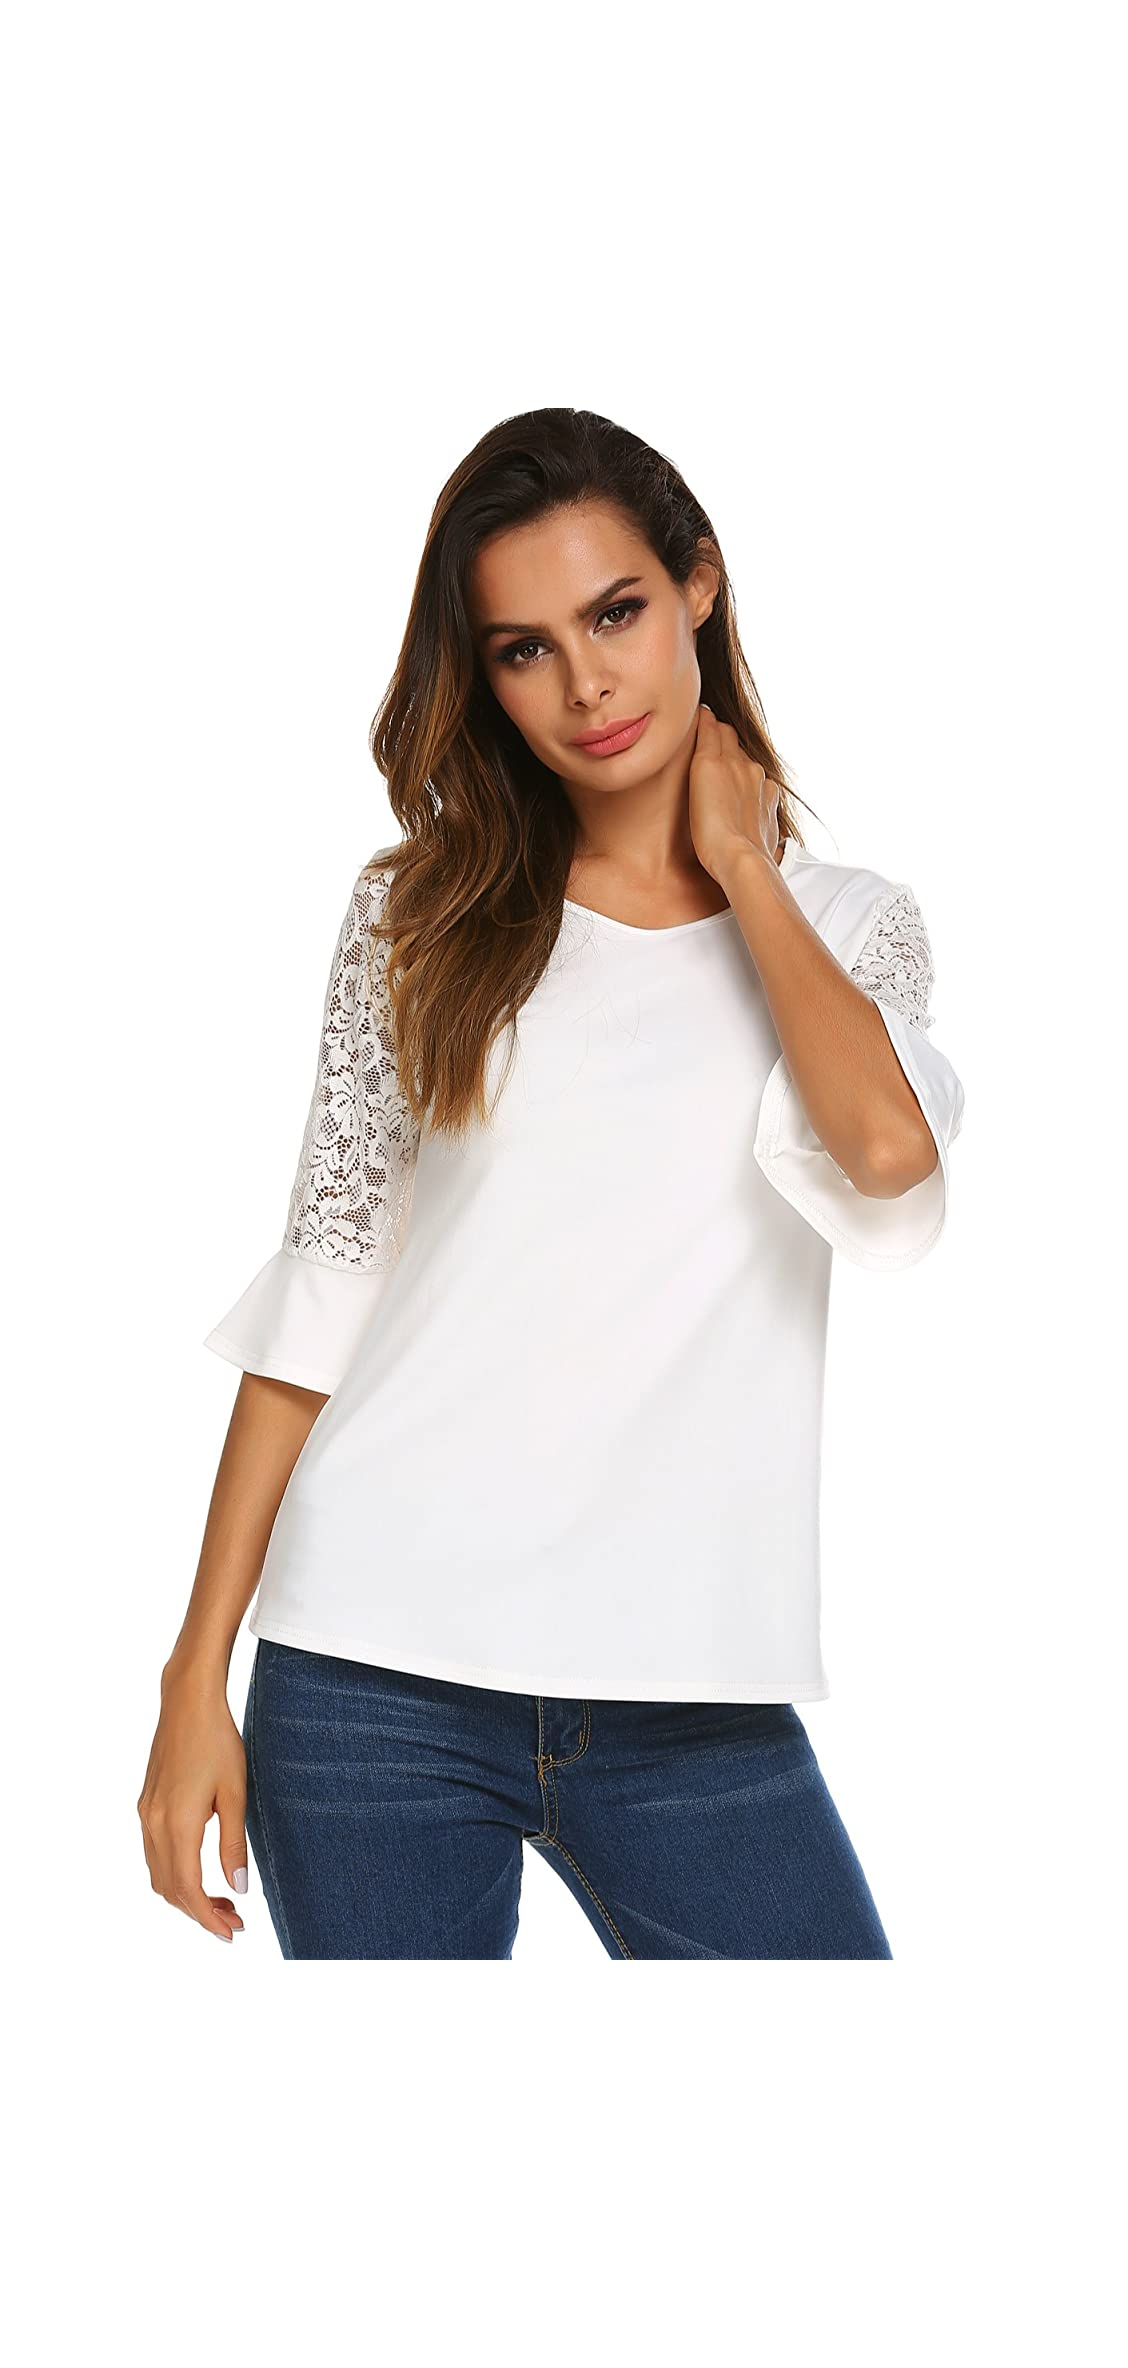 / Sleeve Shirts For Women Womens Lace Tops Round Neck